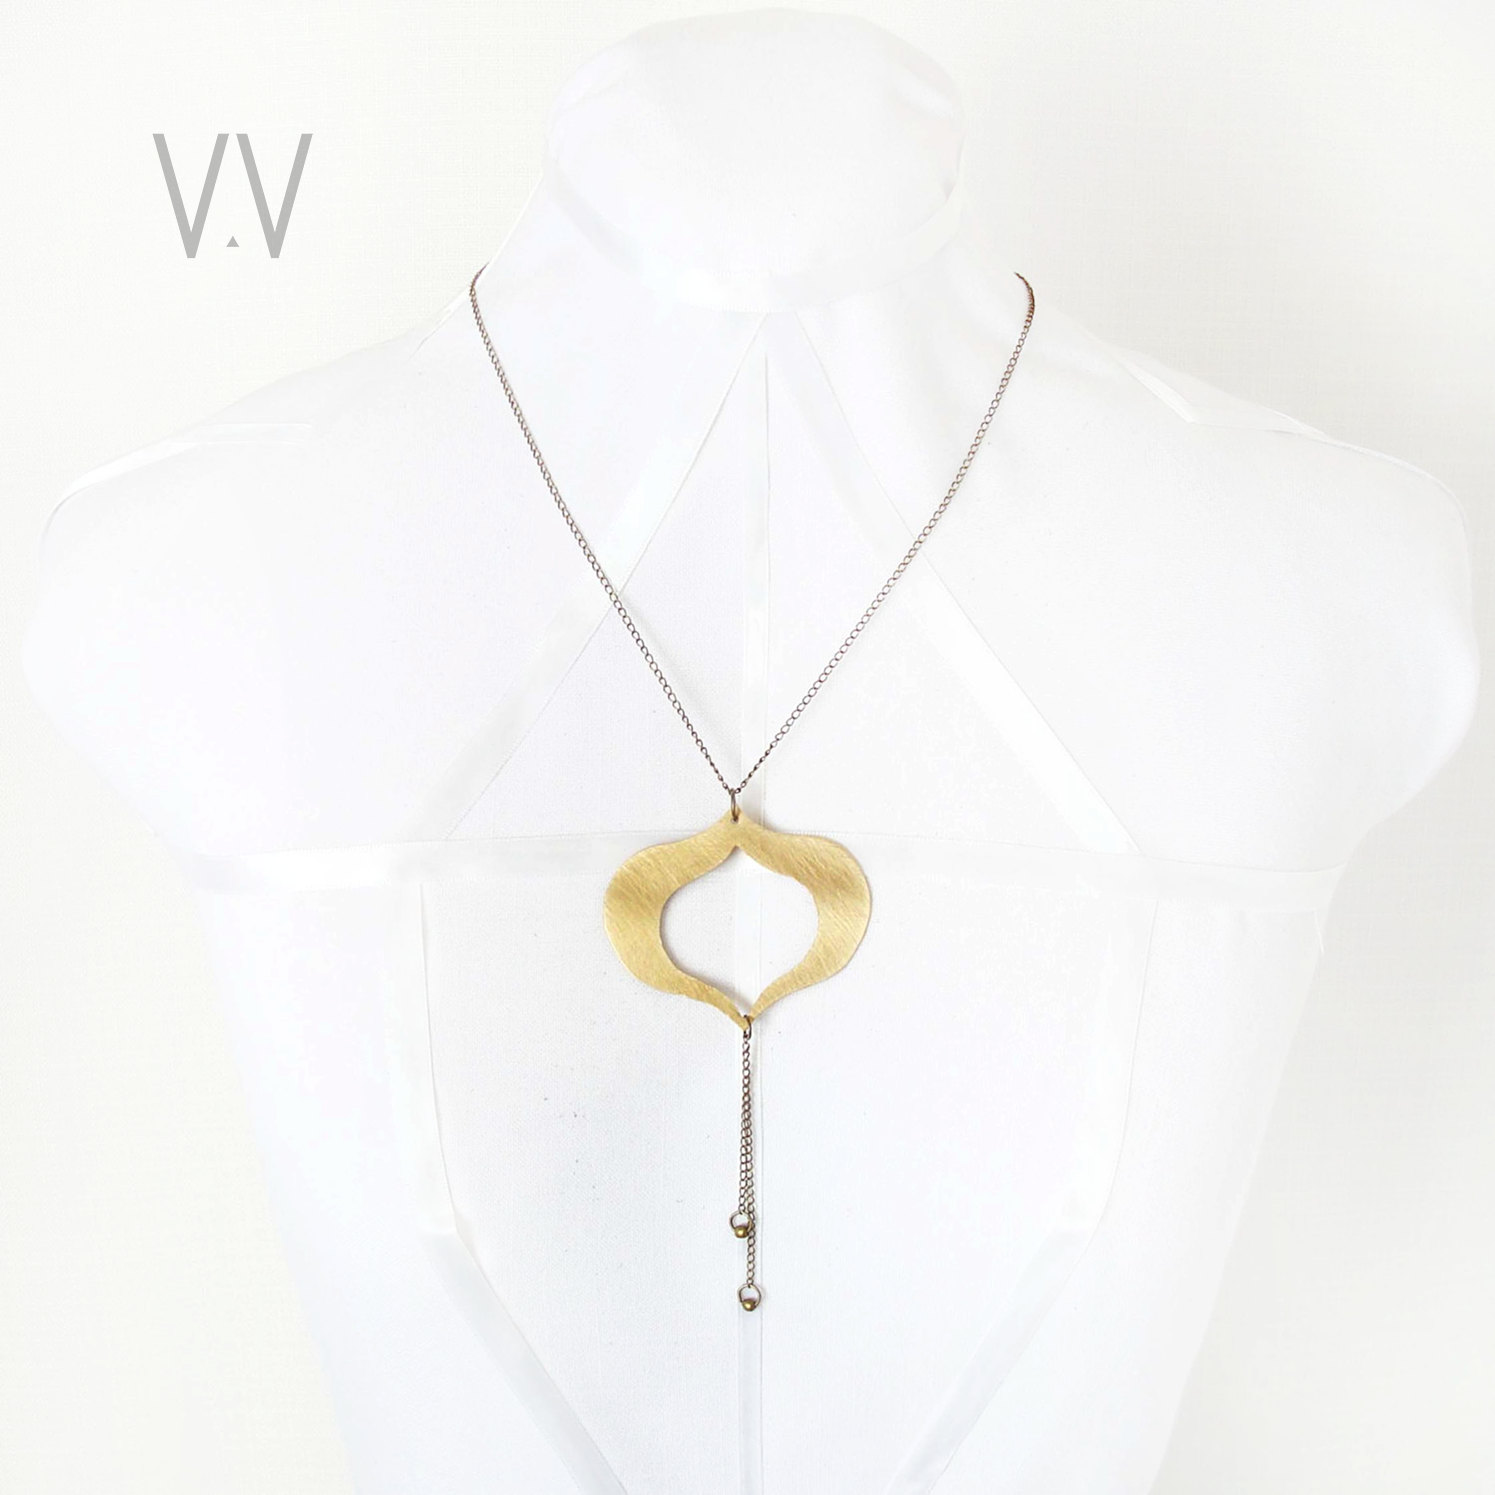 rustic handcrafted seta spherita file necklace product colina marcela page minimal